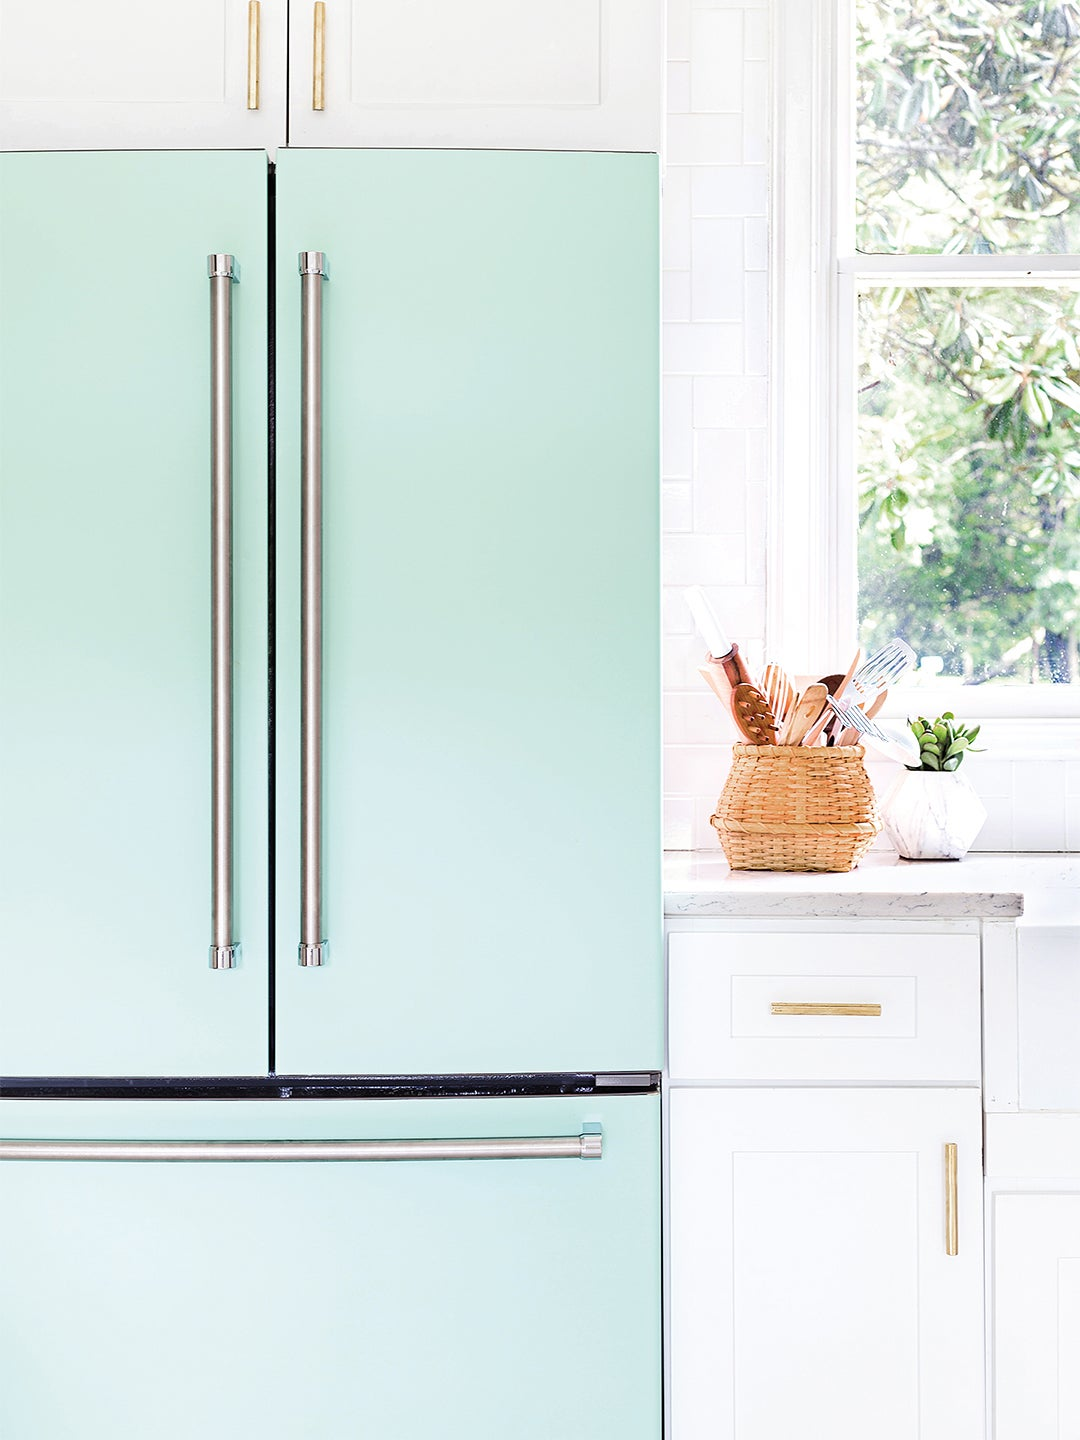 How to Organize a French Door Refrigerator So You Can Always Find the Salsa Jar